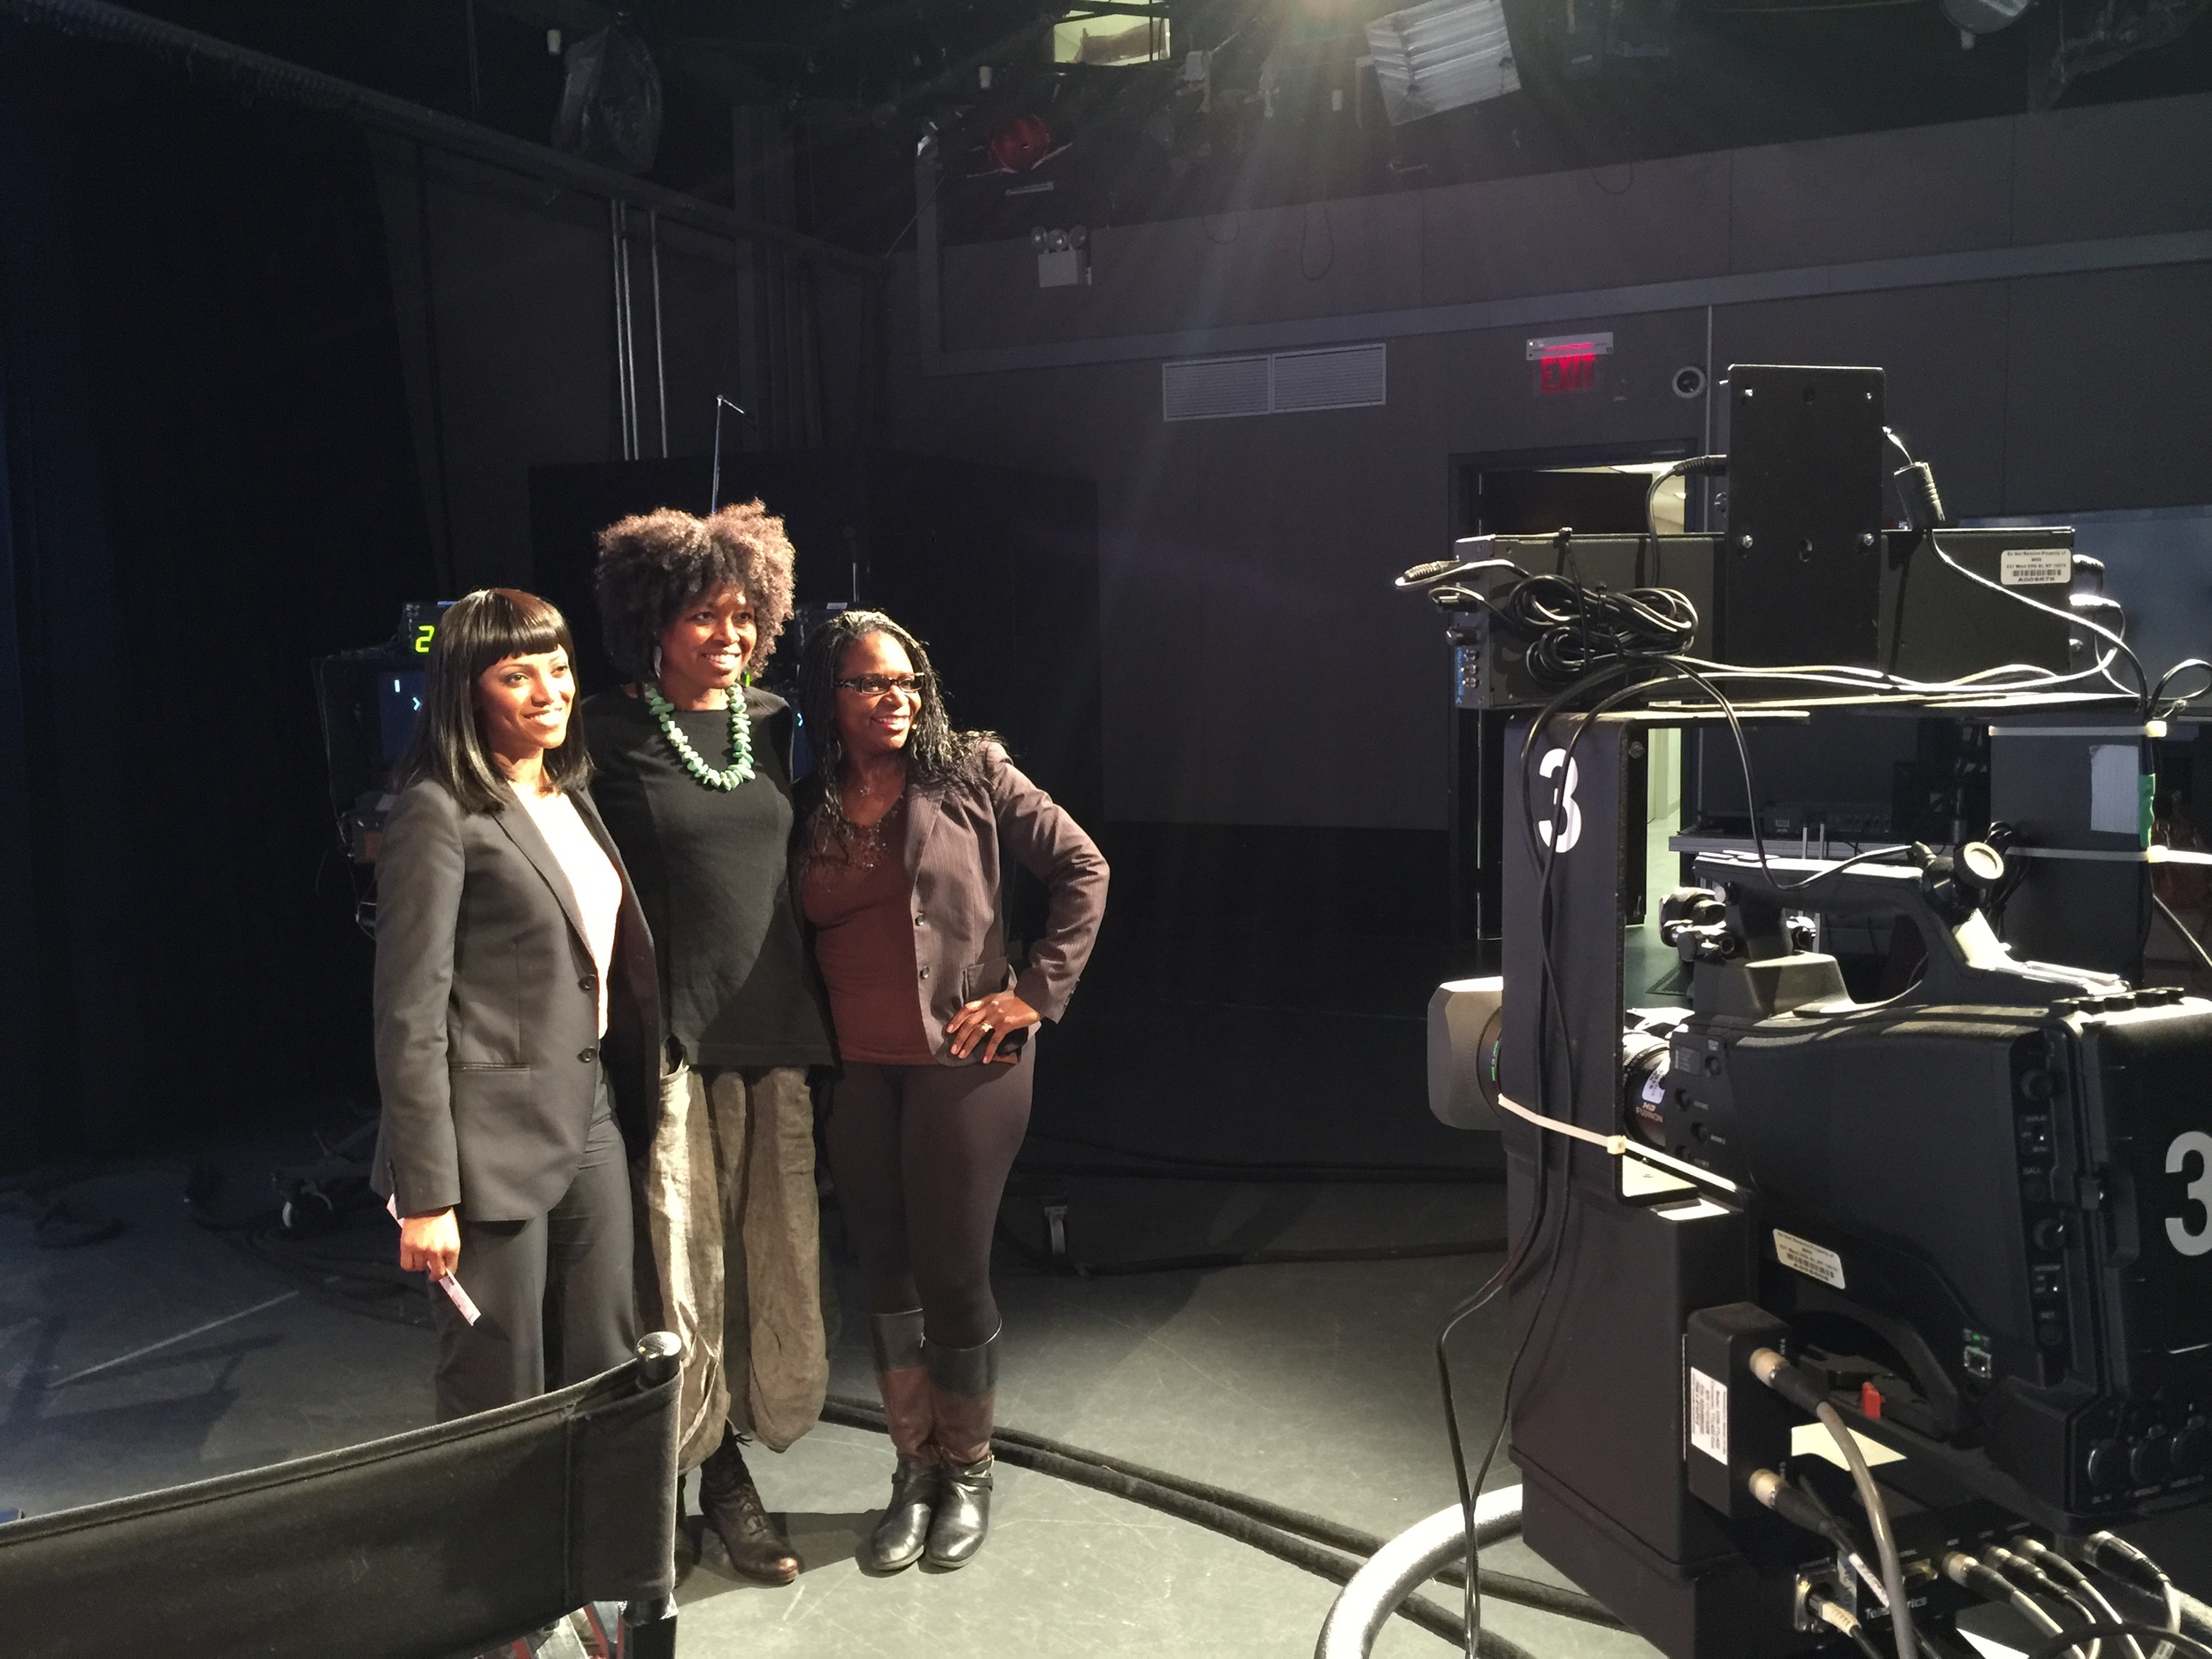 ©Shelita Birchett Benash with actress, Deirdra McDowell and director, Marishka Phillips at MNN studios in NYC, March 23, 2015.